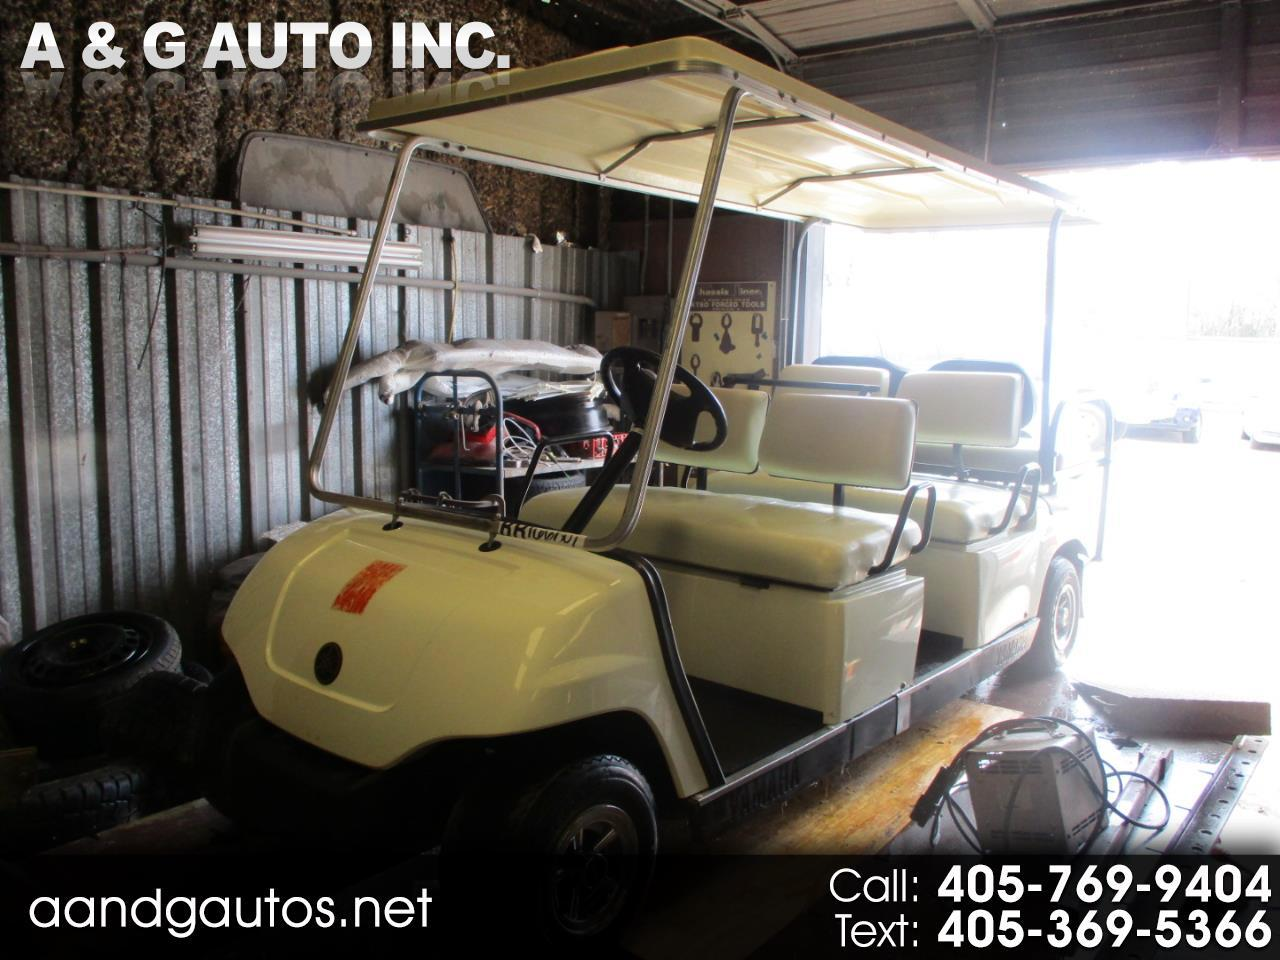 Used 2000 Yamaha Golf Cart Electric For Sale In Oklahoma City Ok 73141 A G Auto Inc